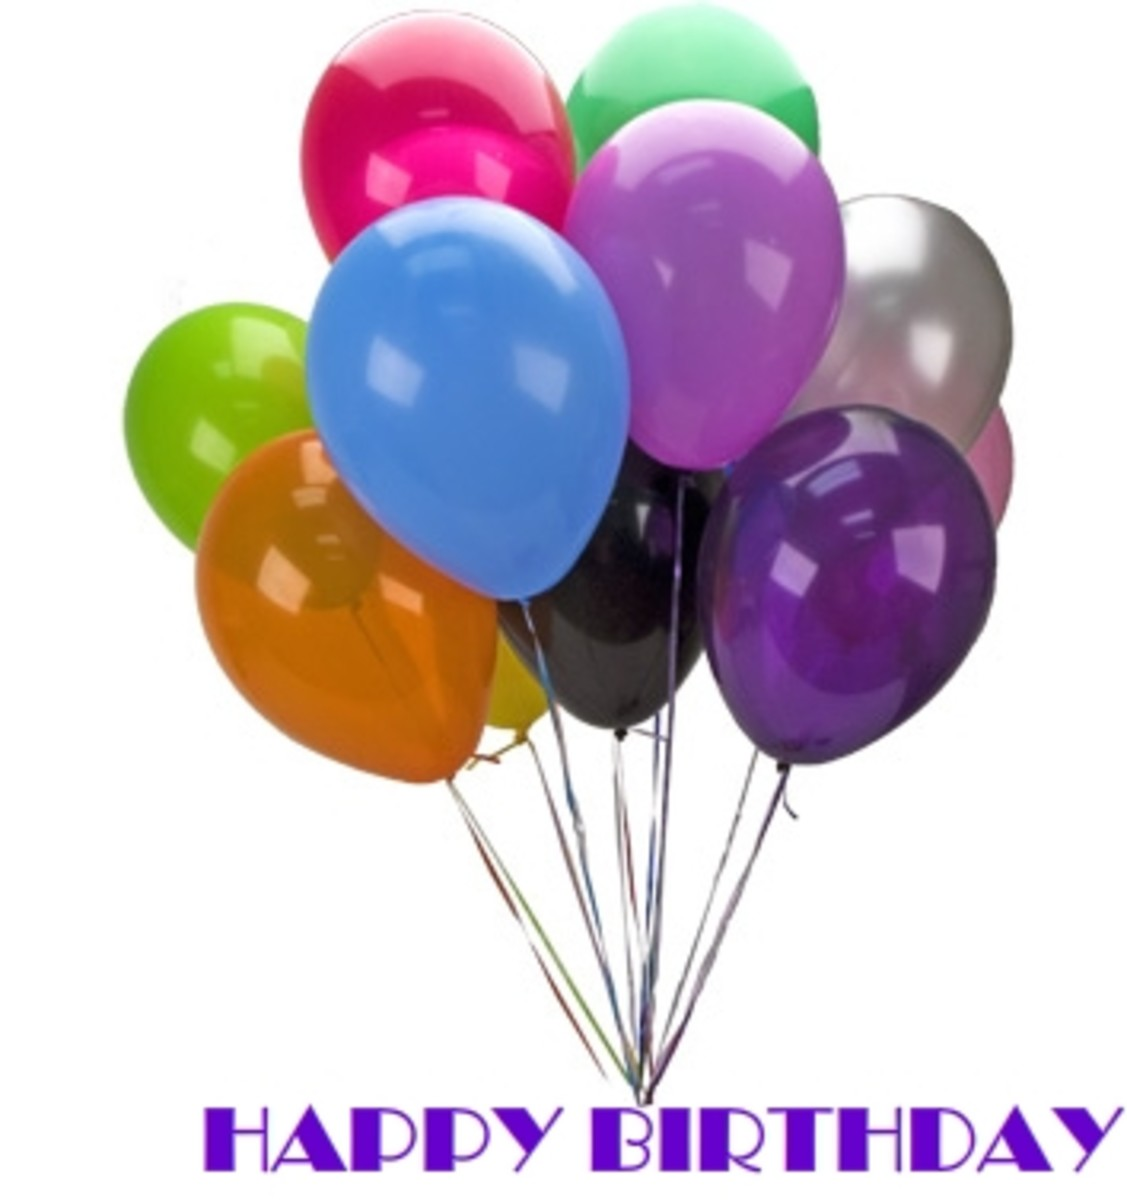 120 Original Birthday Messages Wishes Quotes: Original And Interesting Birthday Wishes ,Quotes And